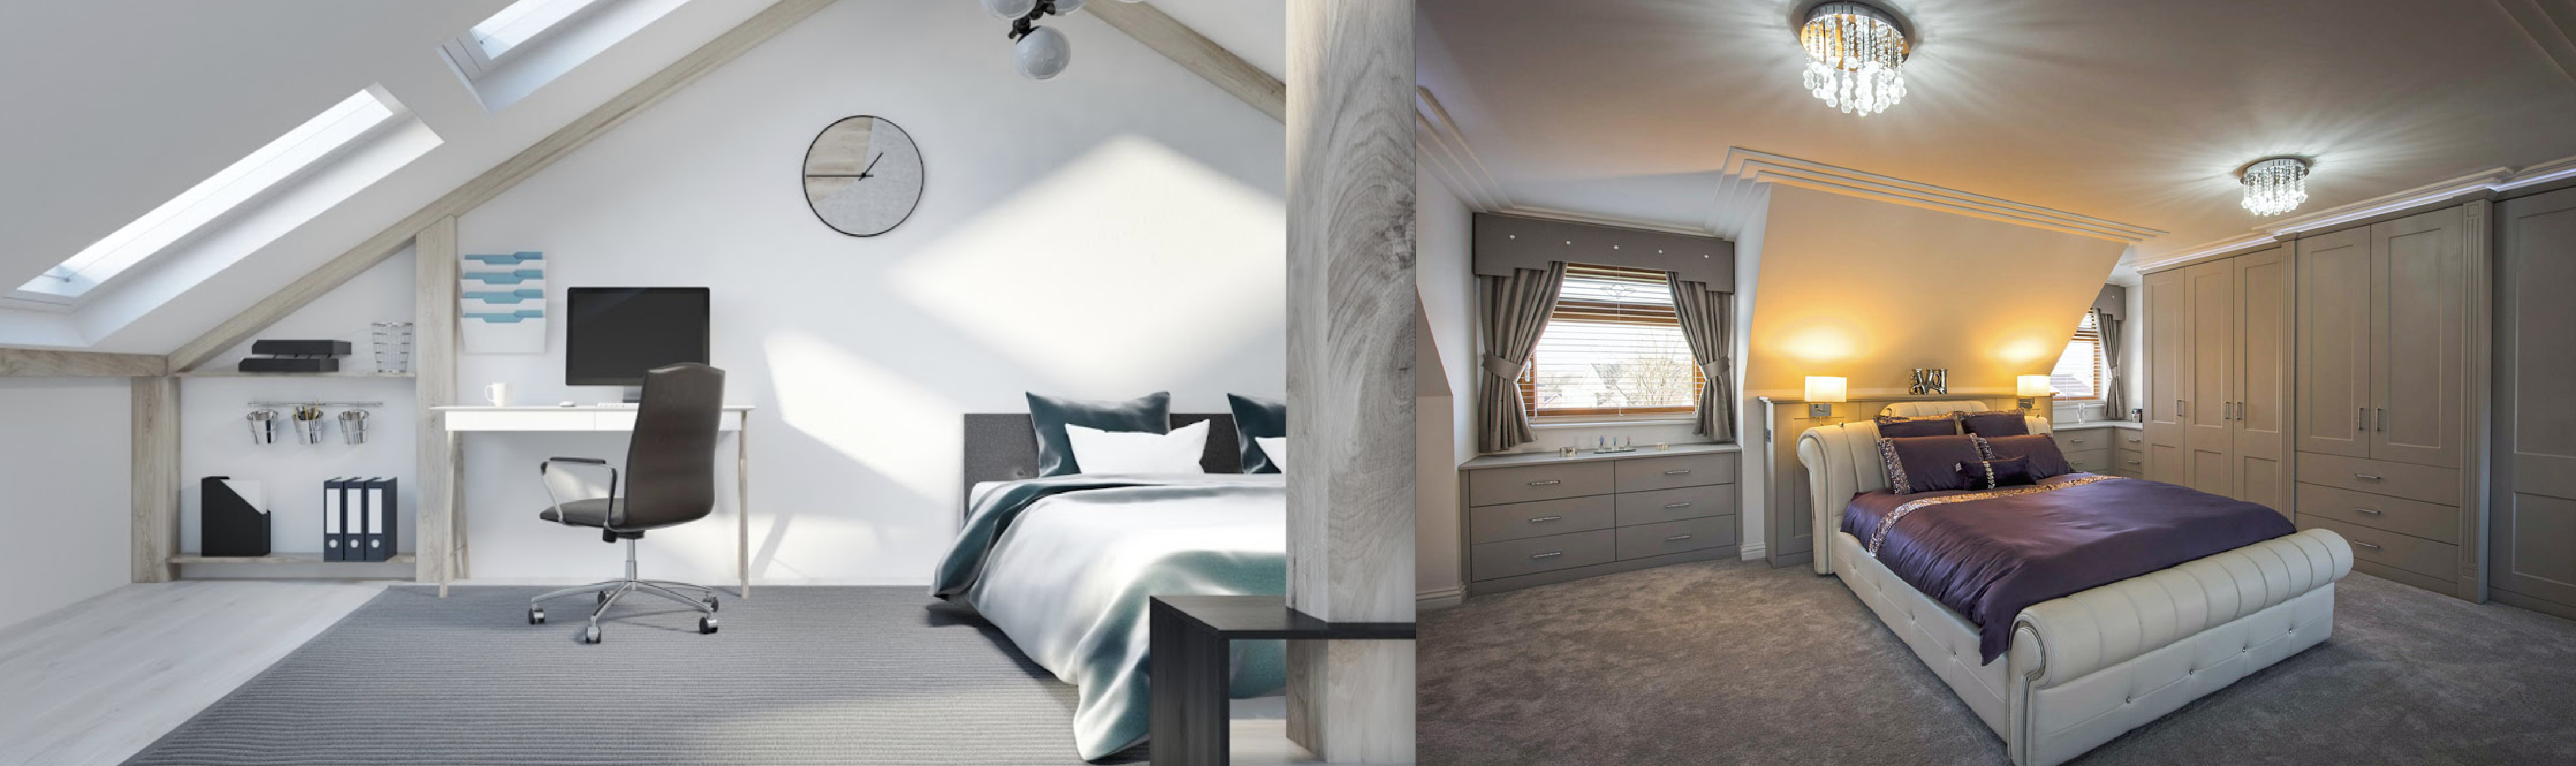 Beautiful Dormer loft conversion in Worsley, creating a new master bedroom with private bathroom, walk in wardrobe and stunning new oak staircase with Velux polyurethane SK06 GPU windows.